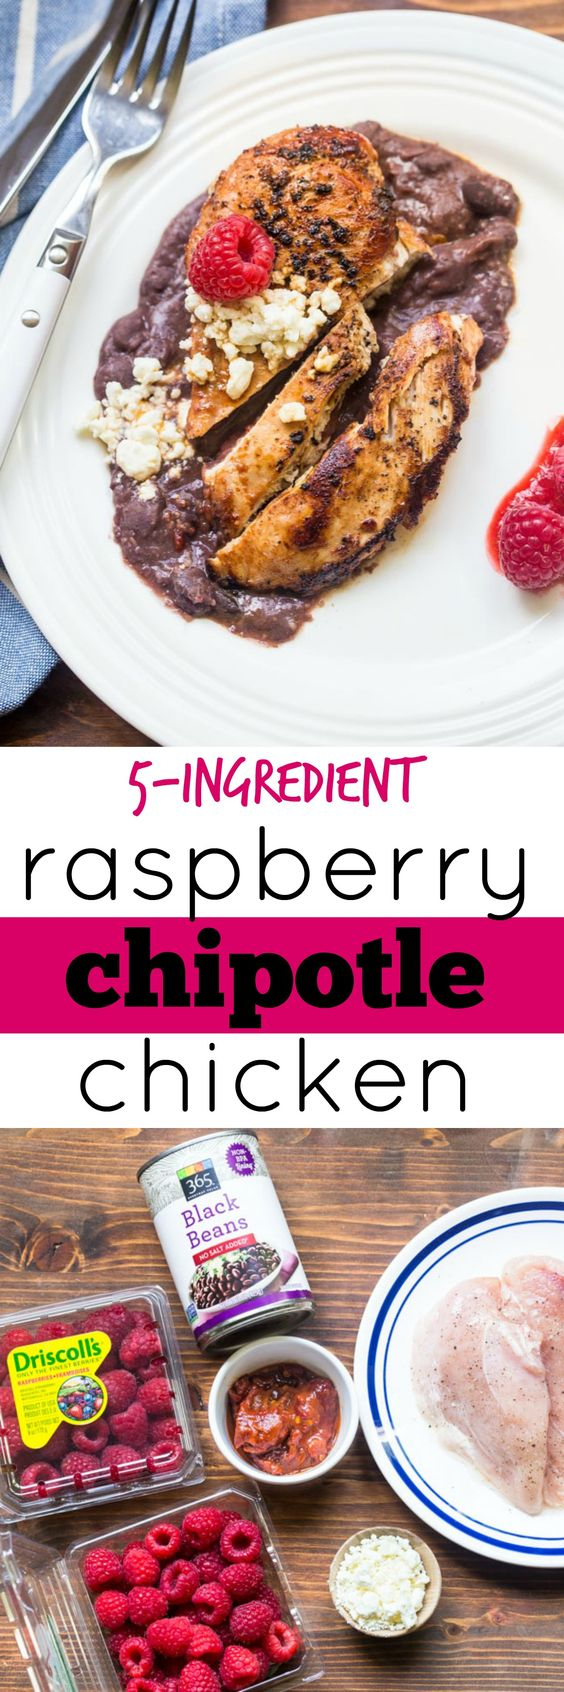 Raspberry chipotle chicken dinner for two! Easy, 5-ingredient raspberry chipotle sauce over chicken with creamy black beans and feta. A new chicken dinner you weren't expecting!